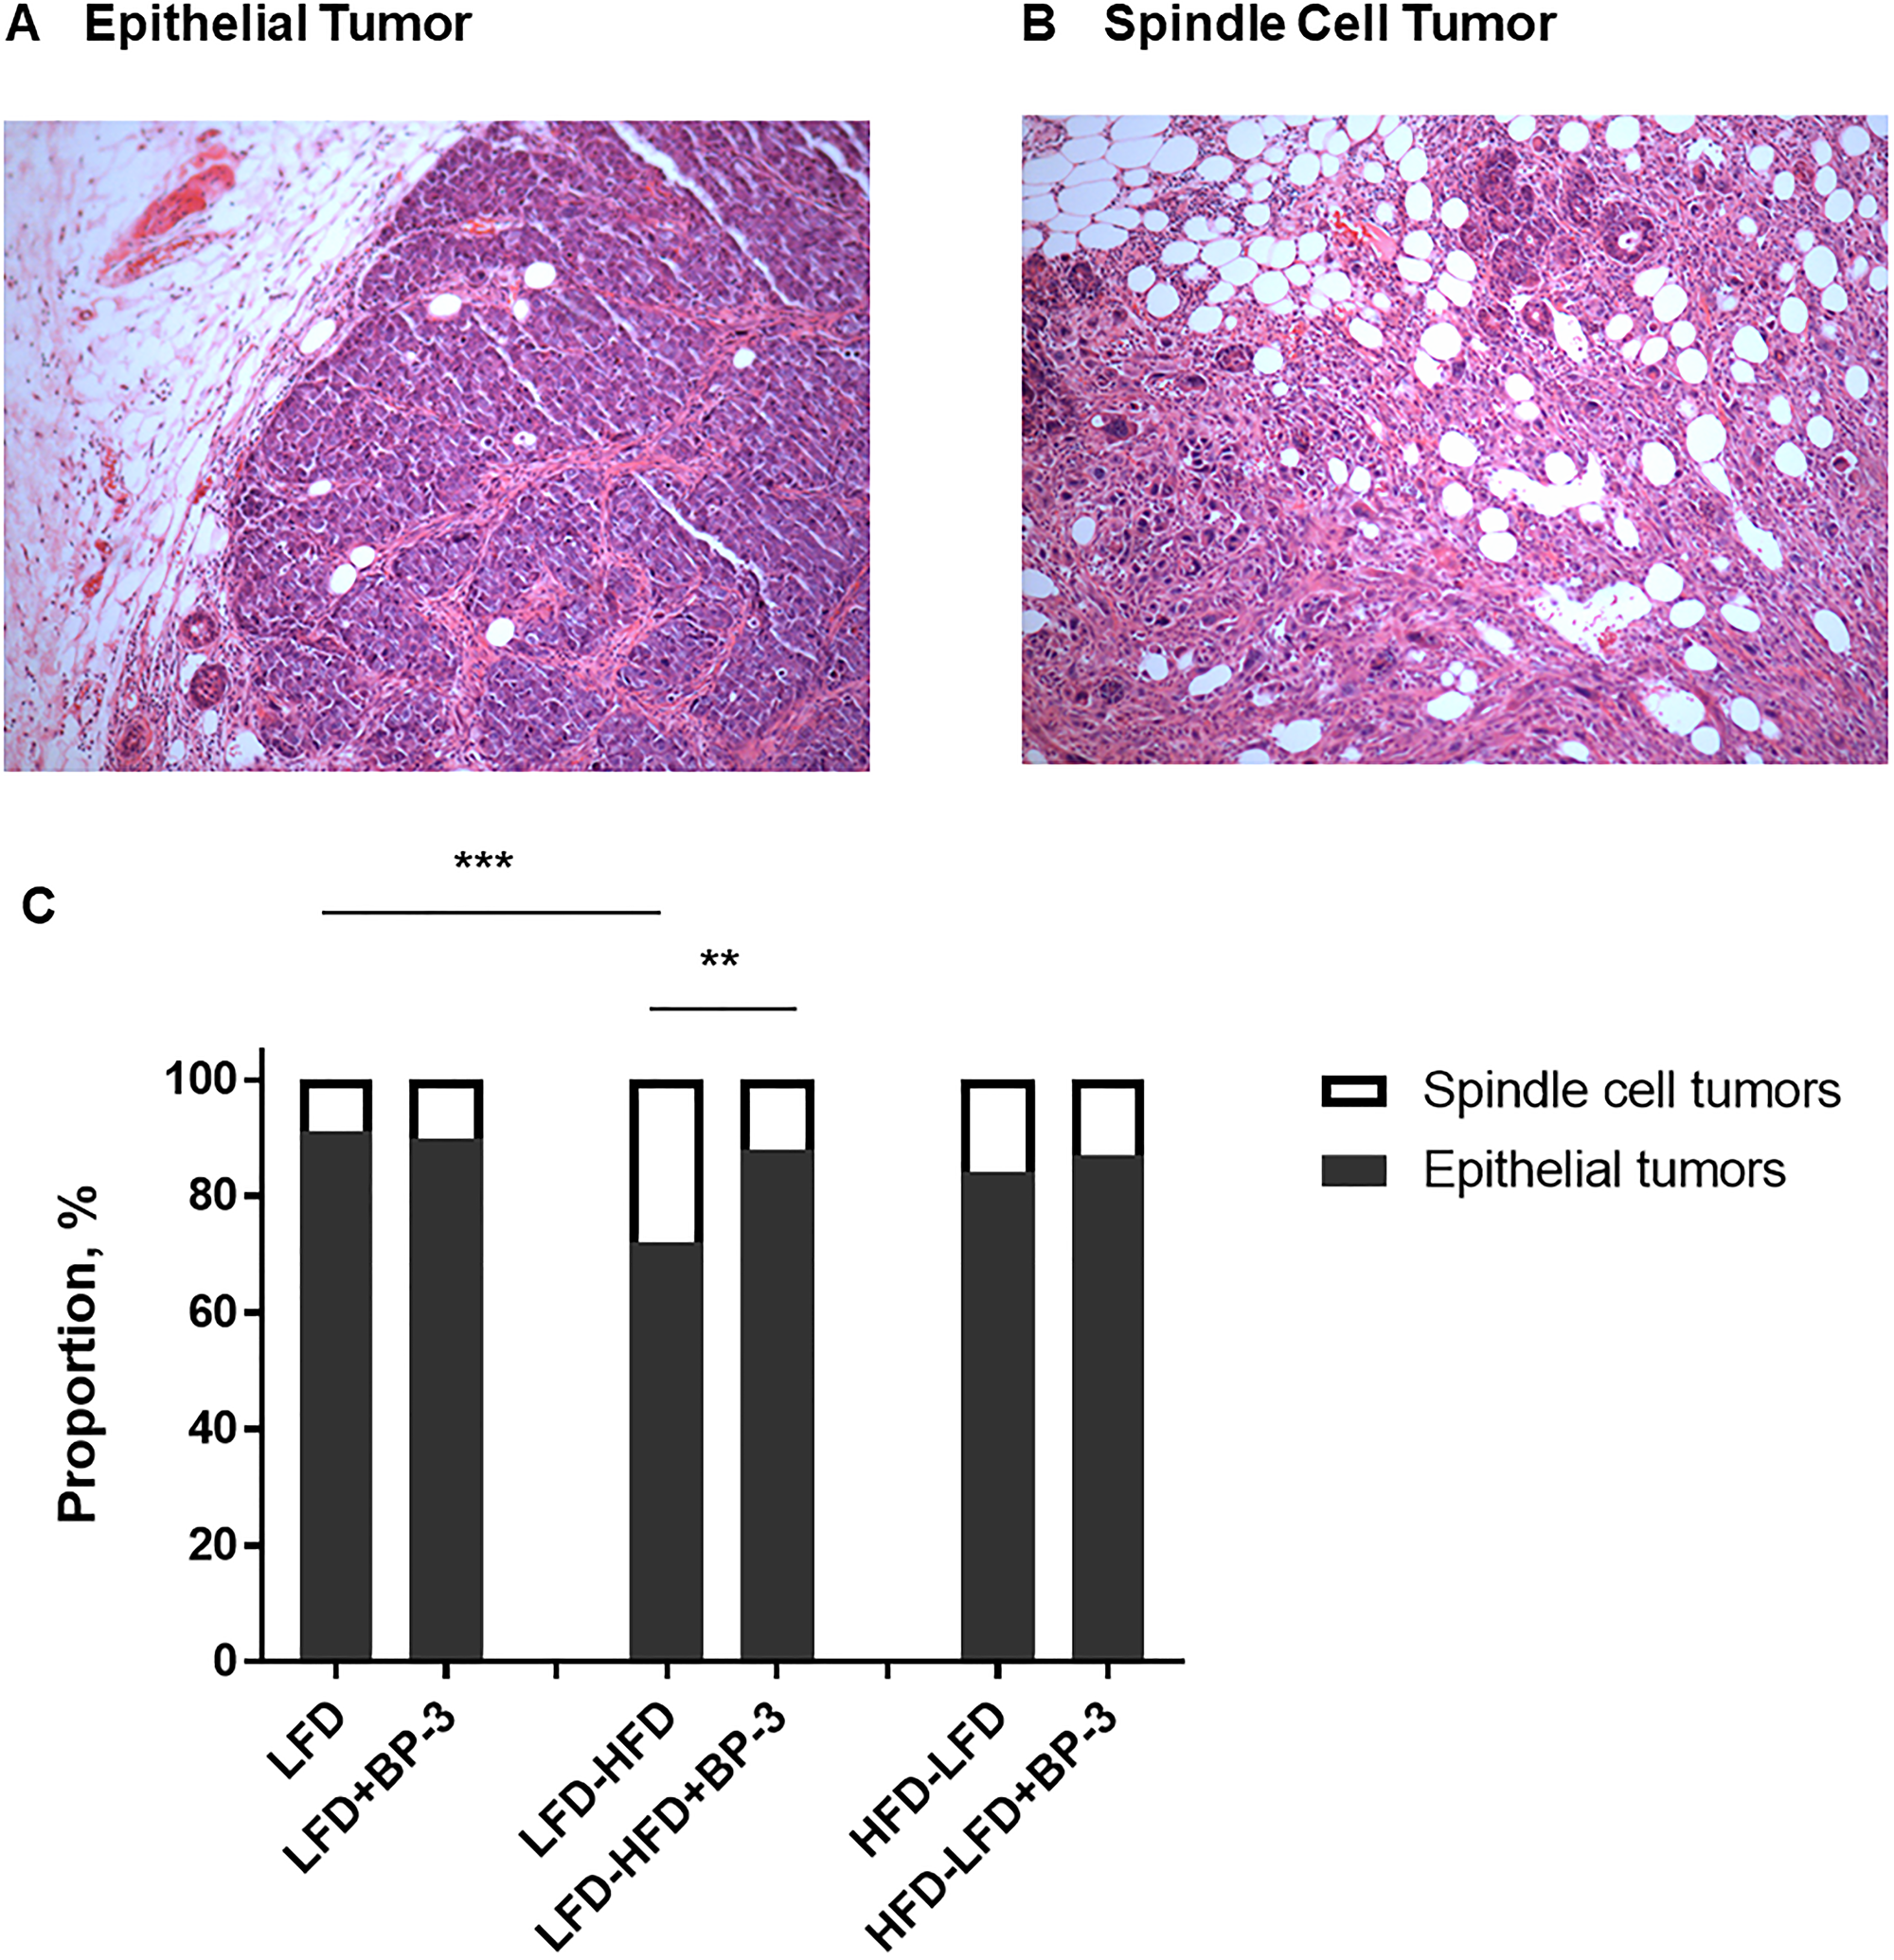 BP-3 increased the proportion of epithelial tumors in mice fed an adult-restricted HFD.